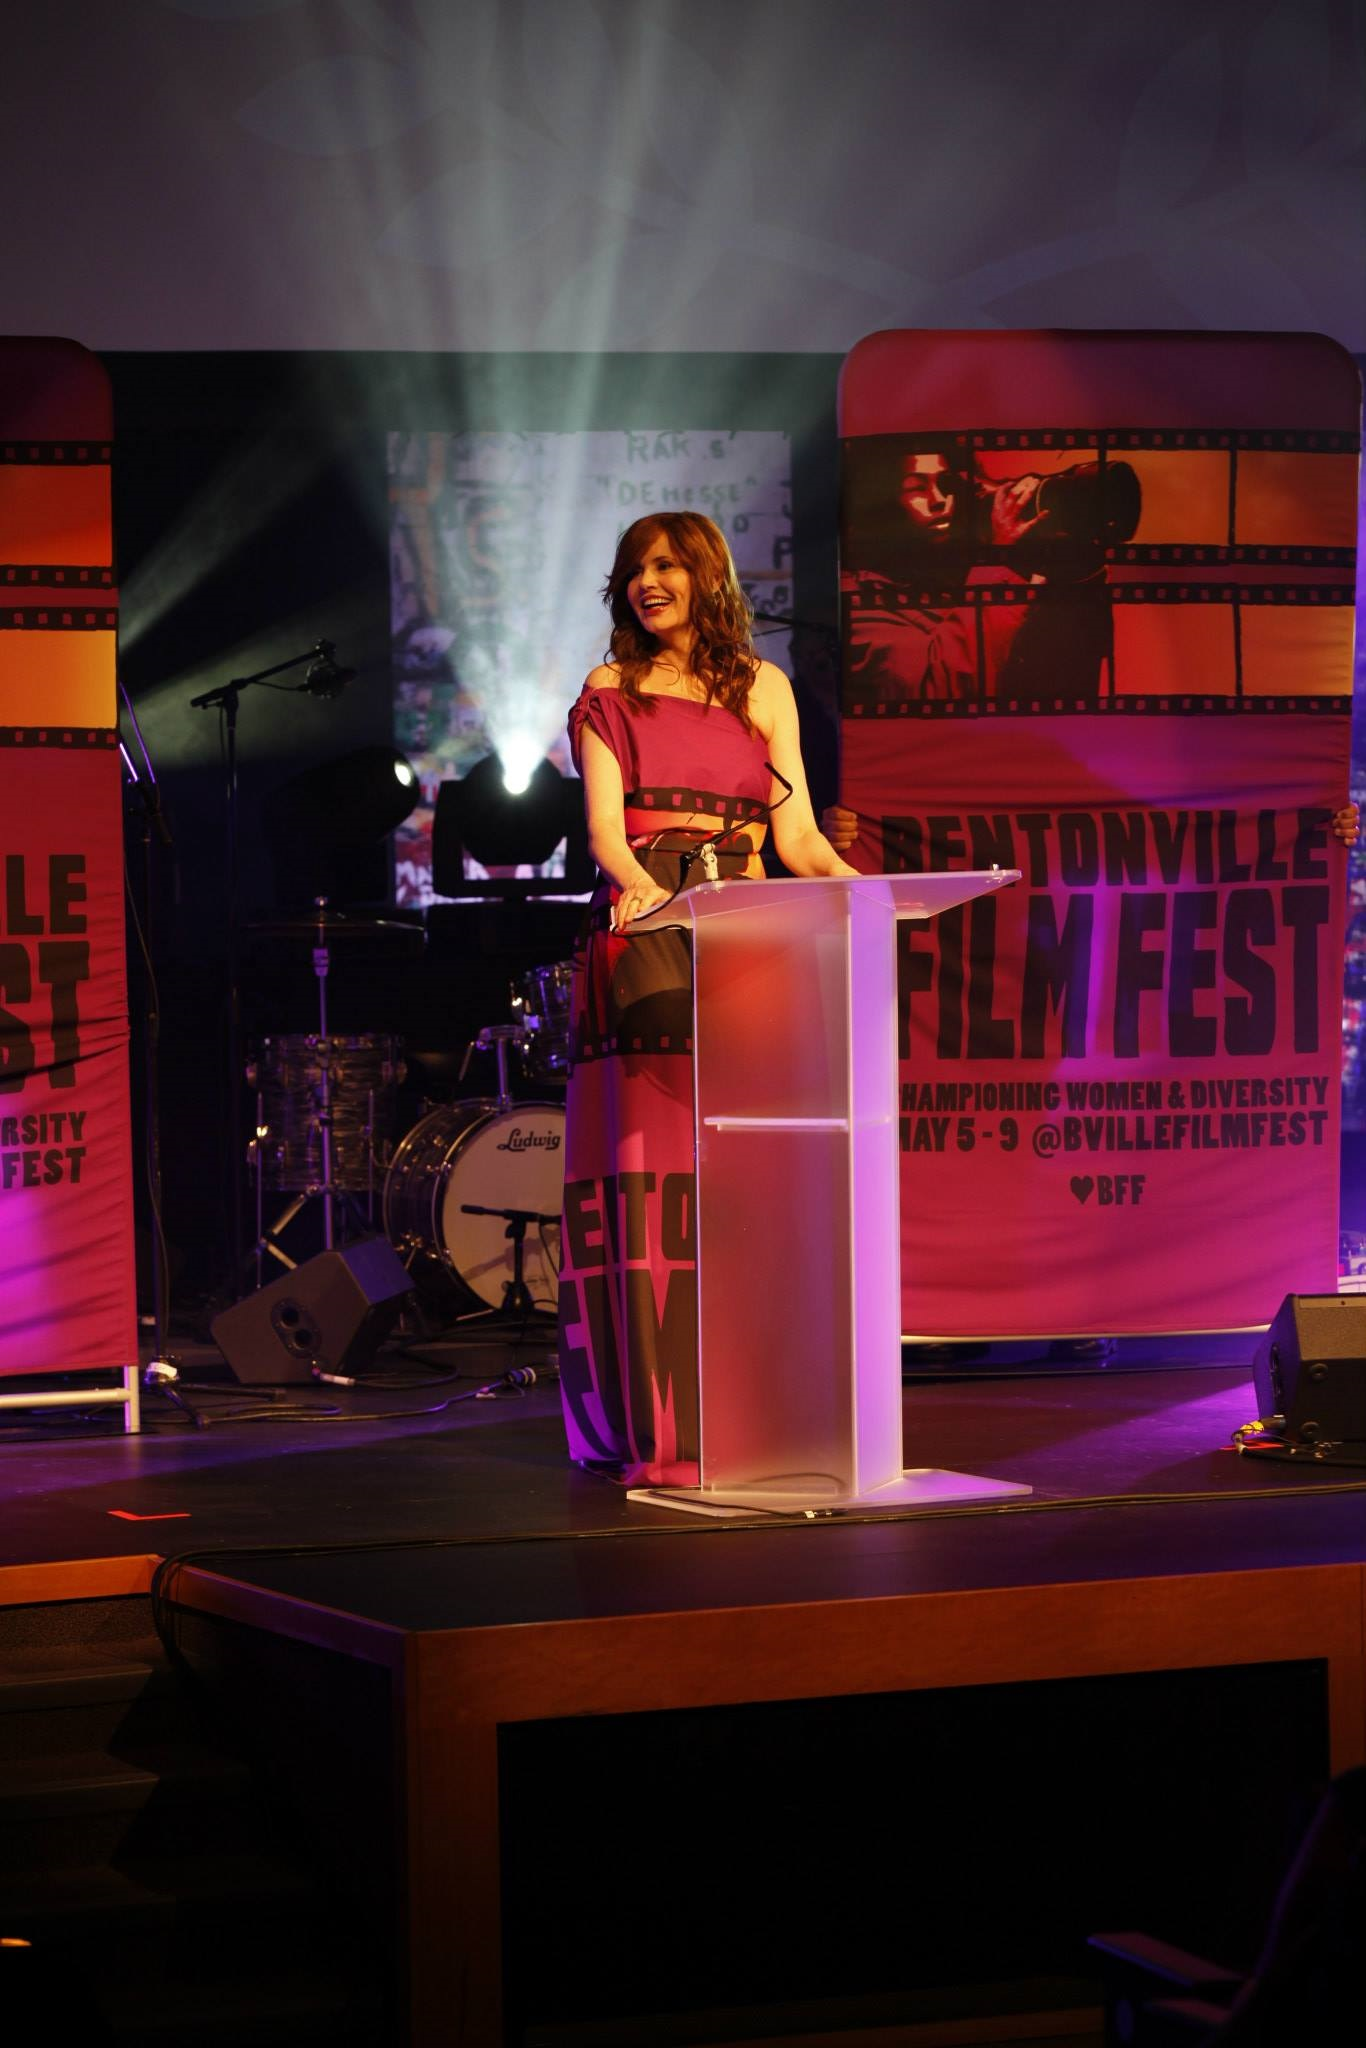 The Bentonville Film Festival (BFF) founded by Academy Award Winner Geena Davis and Trevor Drinkwater, was a star-studded event. Here's Geena Davis at the event.